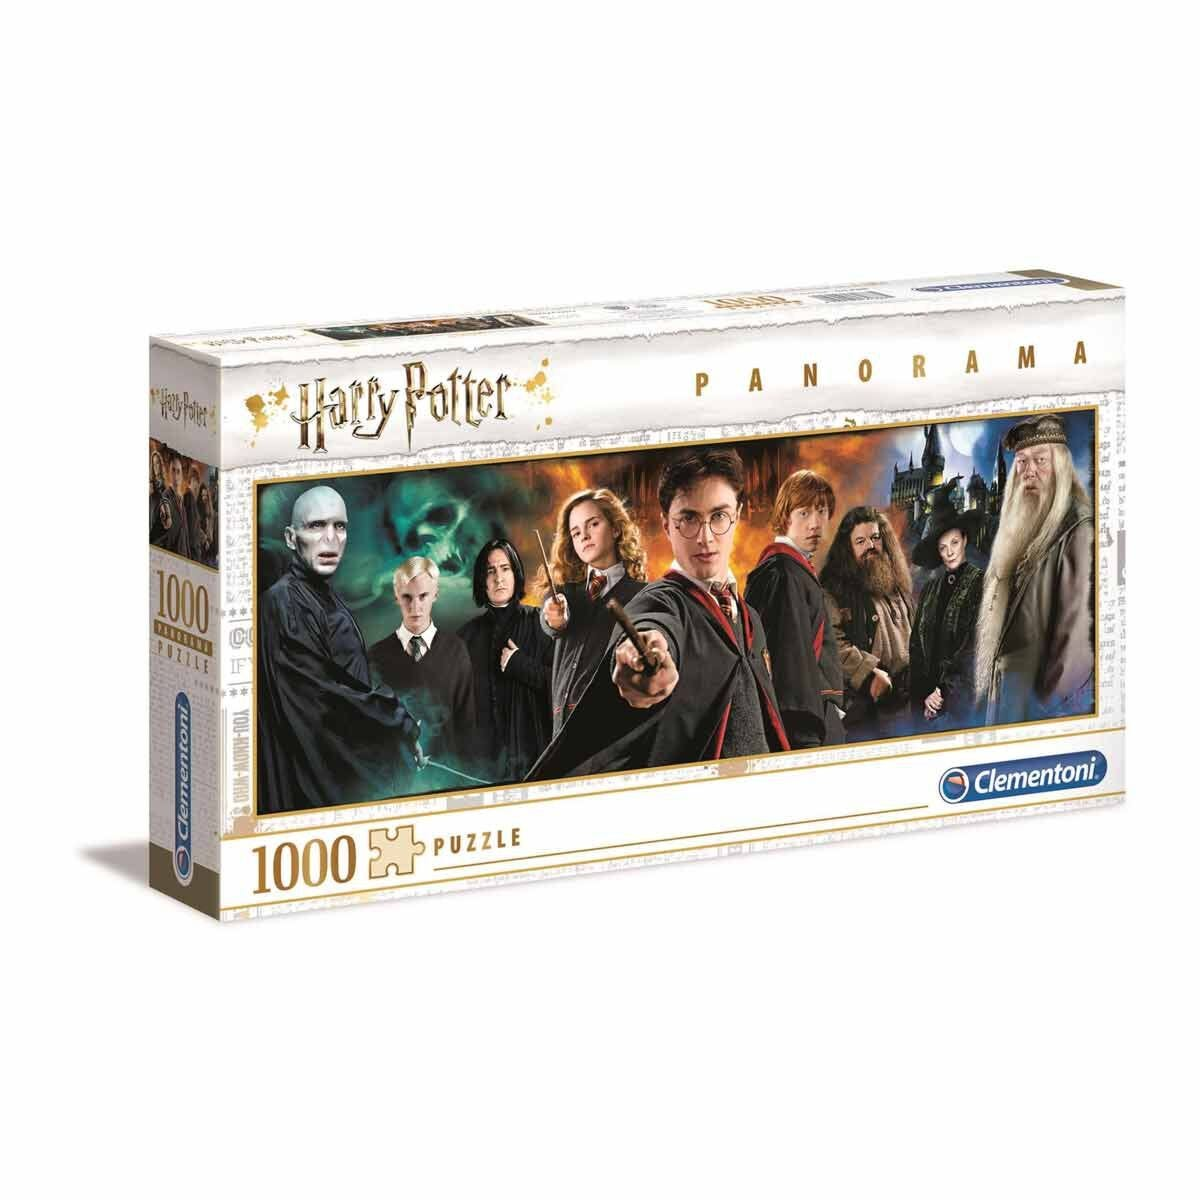 Clementoni Harry Potter Panorama 1000 Piece Jigsaw Puzzle